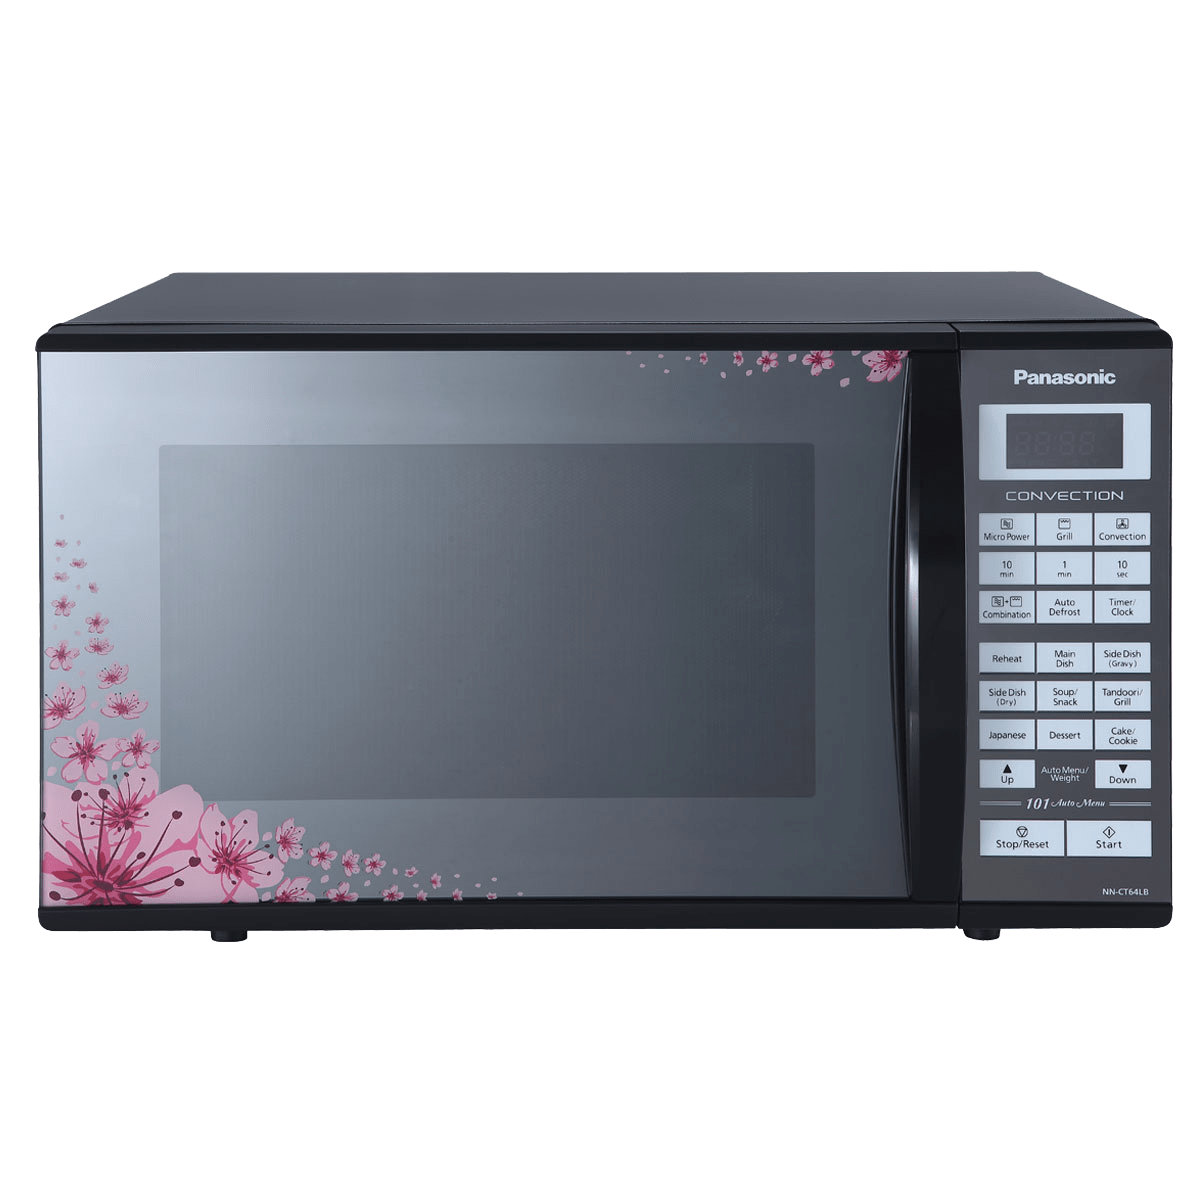 Panasonic 27 Litres Convection Microwave Oven (Floral Mirror Finish, NN-CT64LBFDG, Floral Mirror Finish)